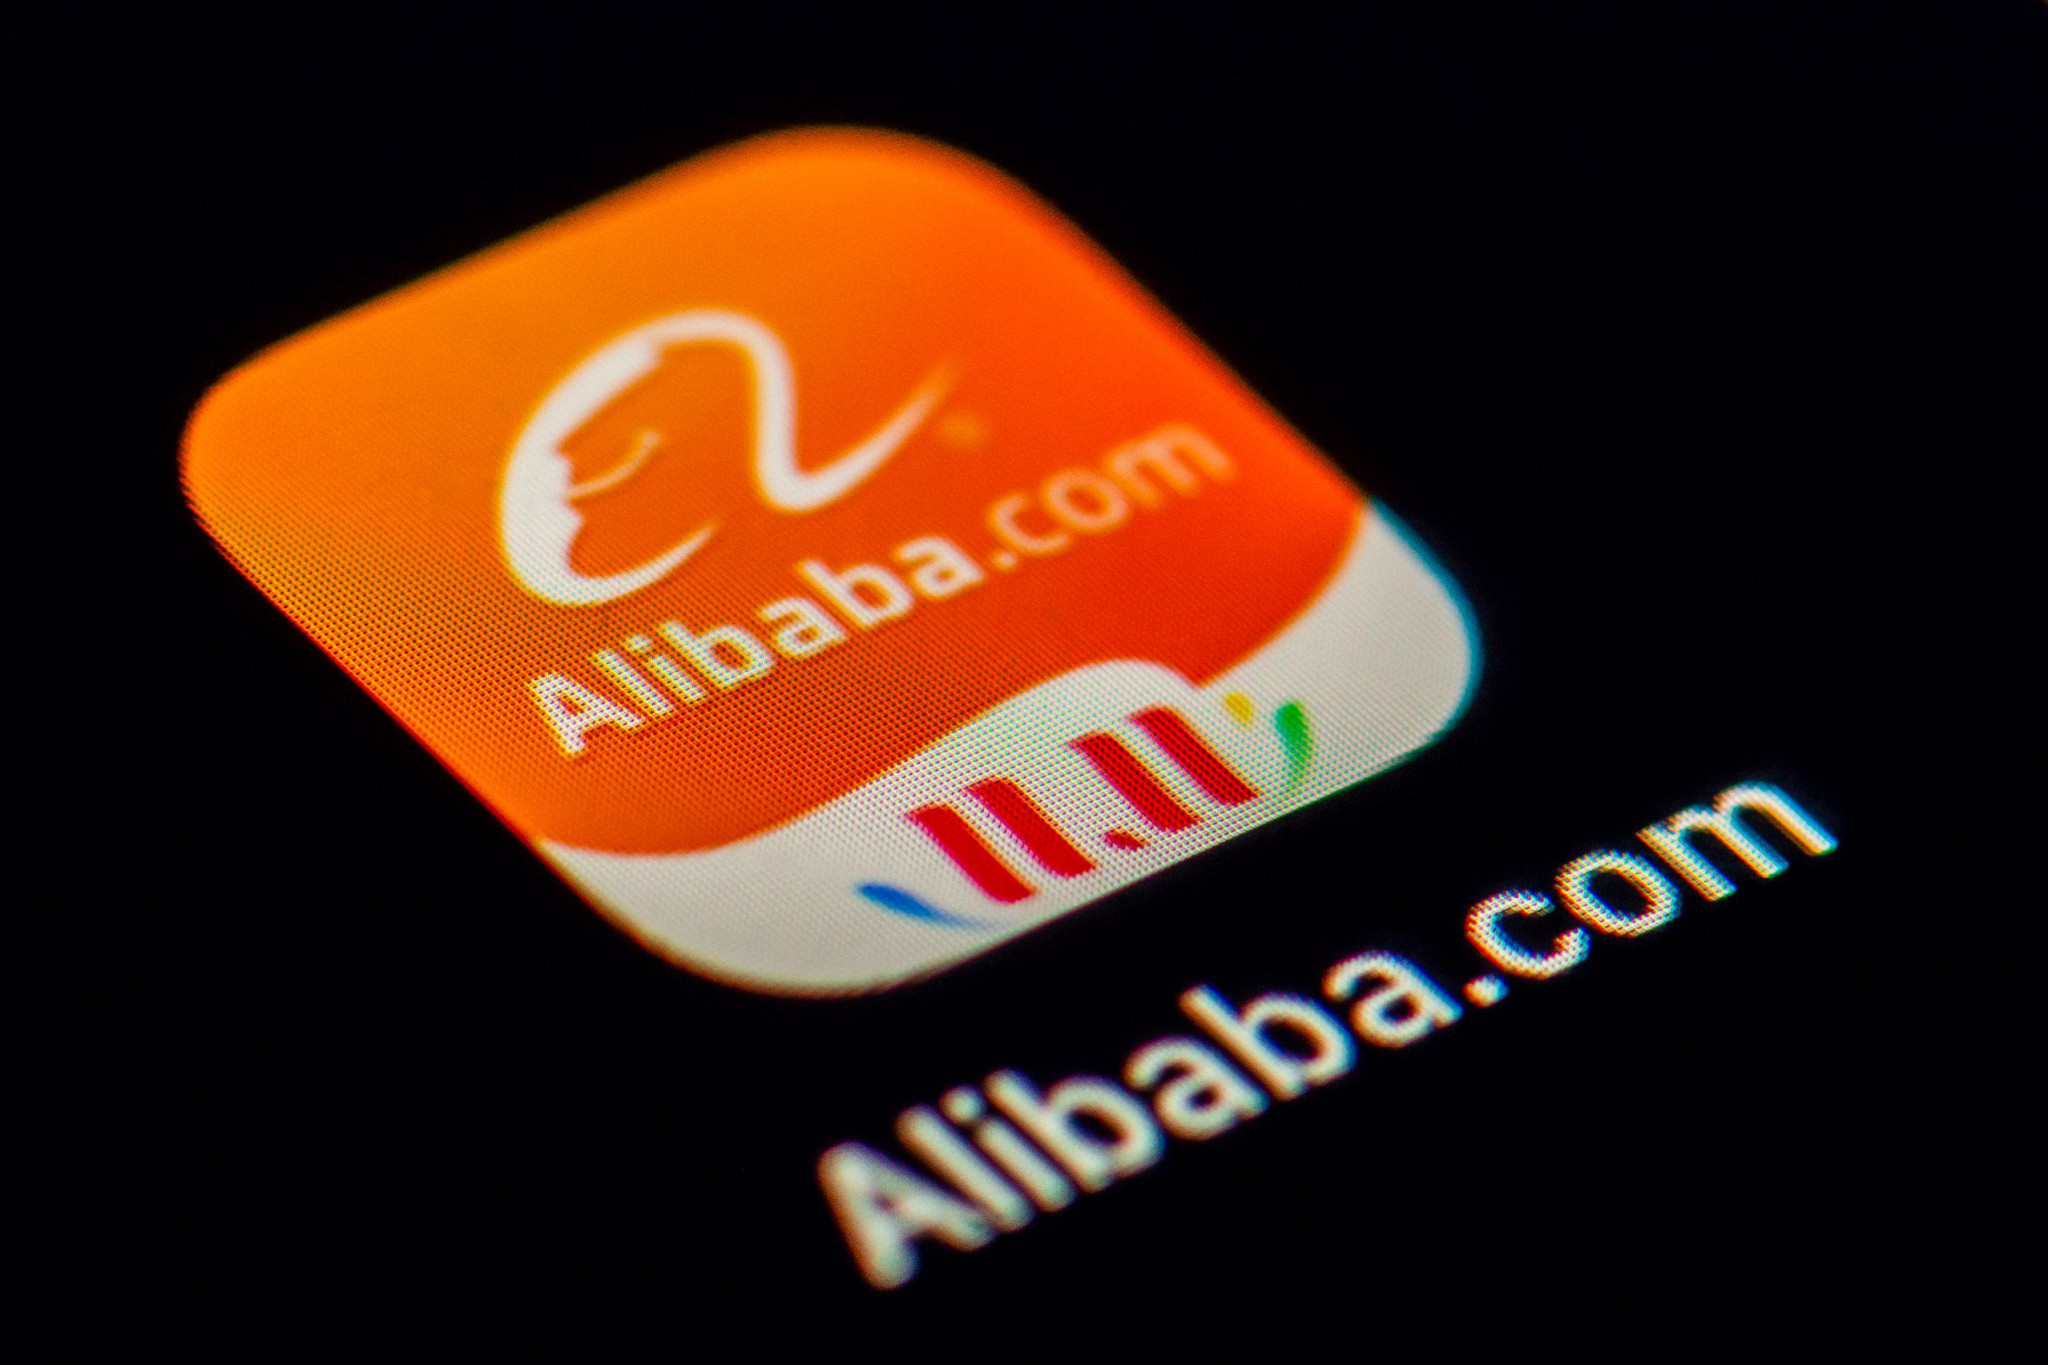 Alibaba is poised to take over the Olympic ticketing system in the coming years ©Getty Images